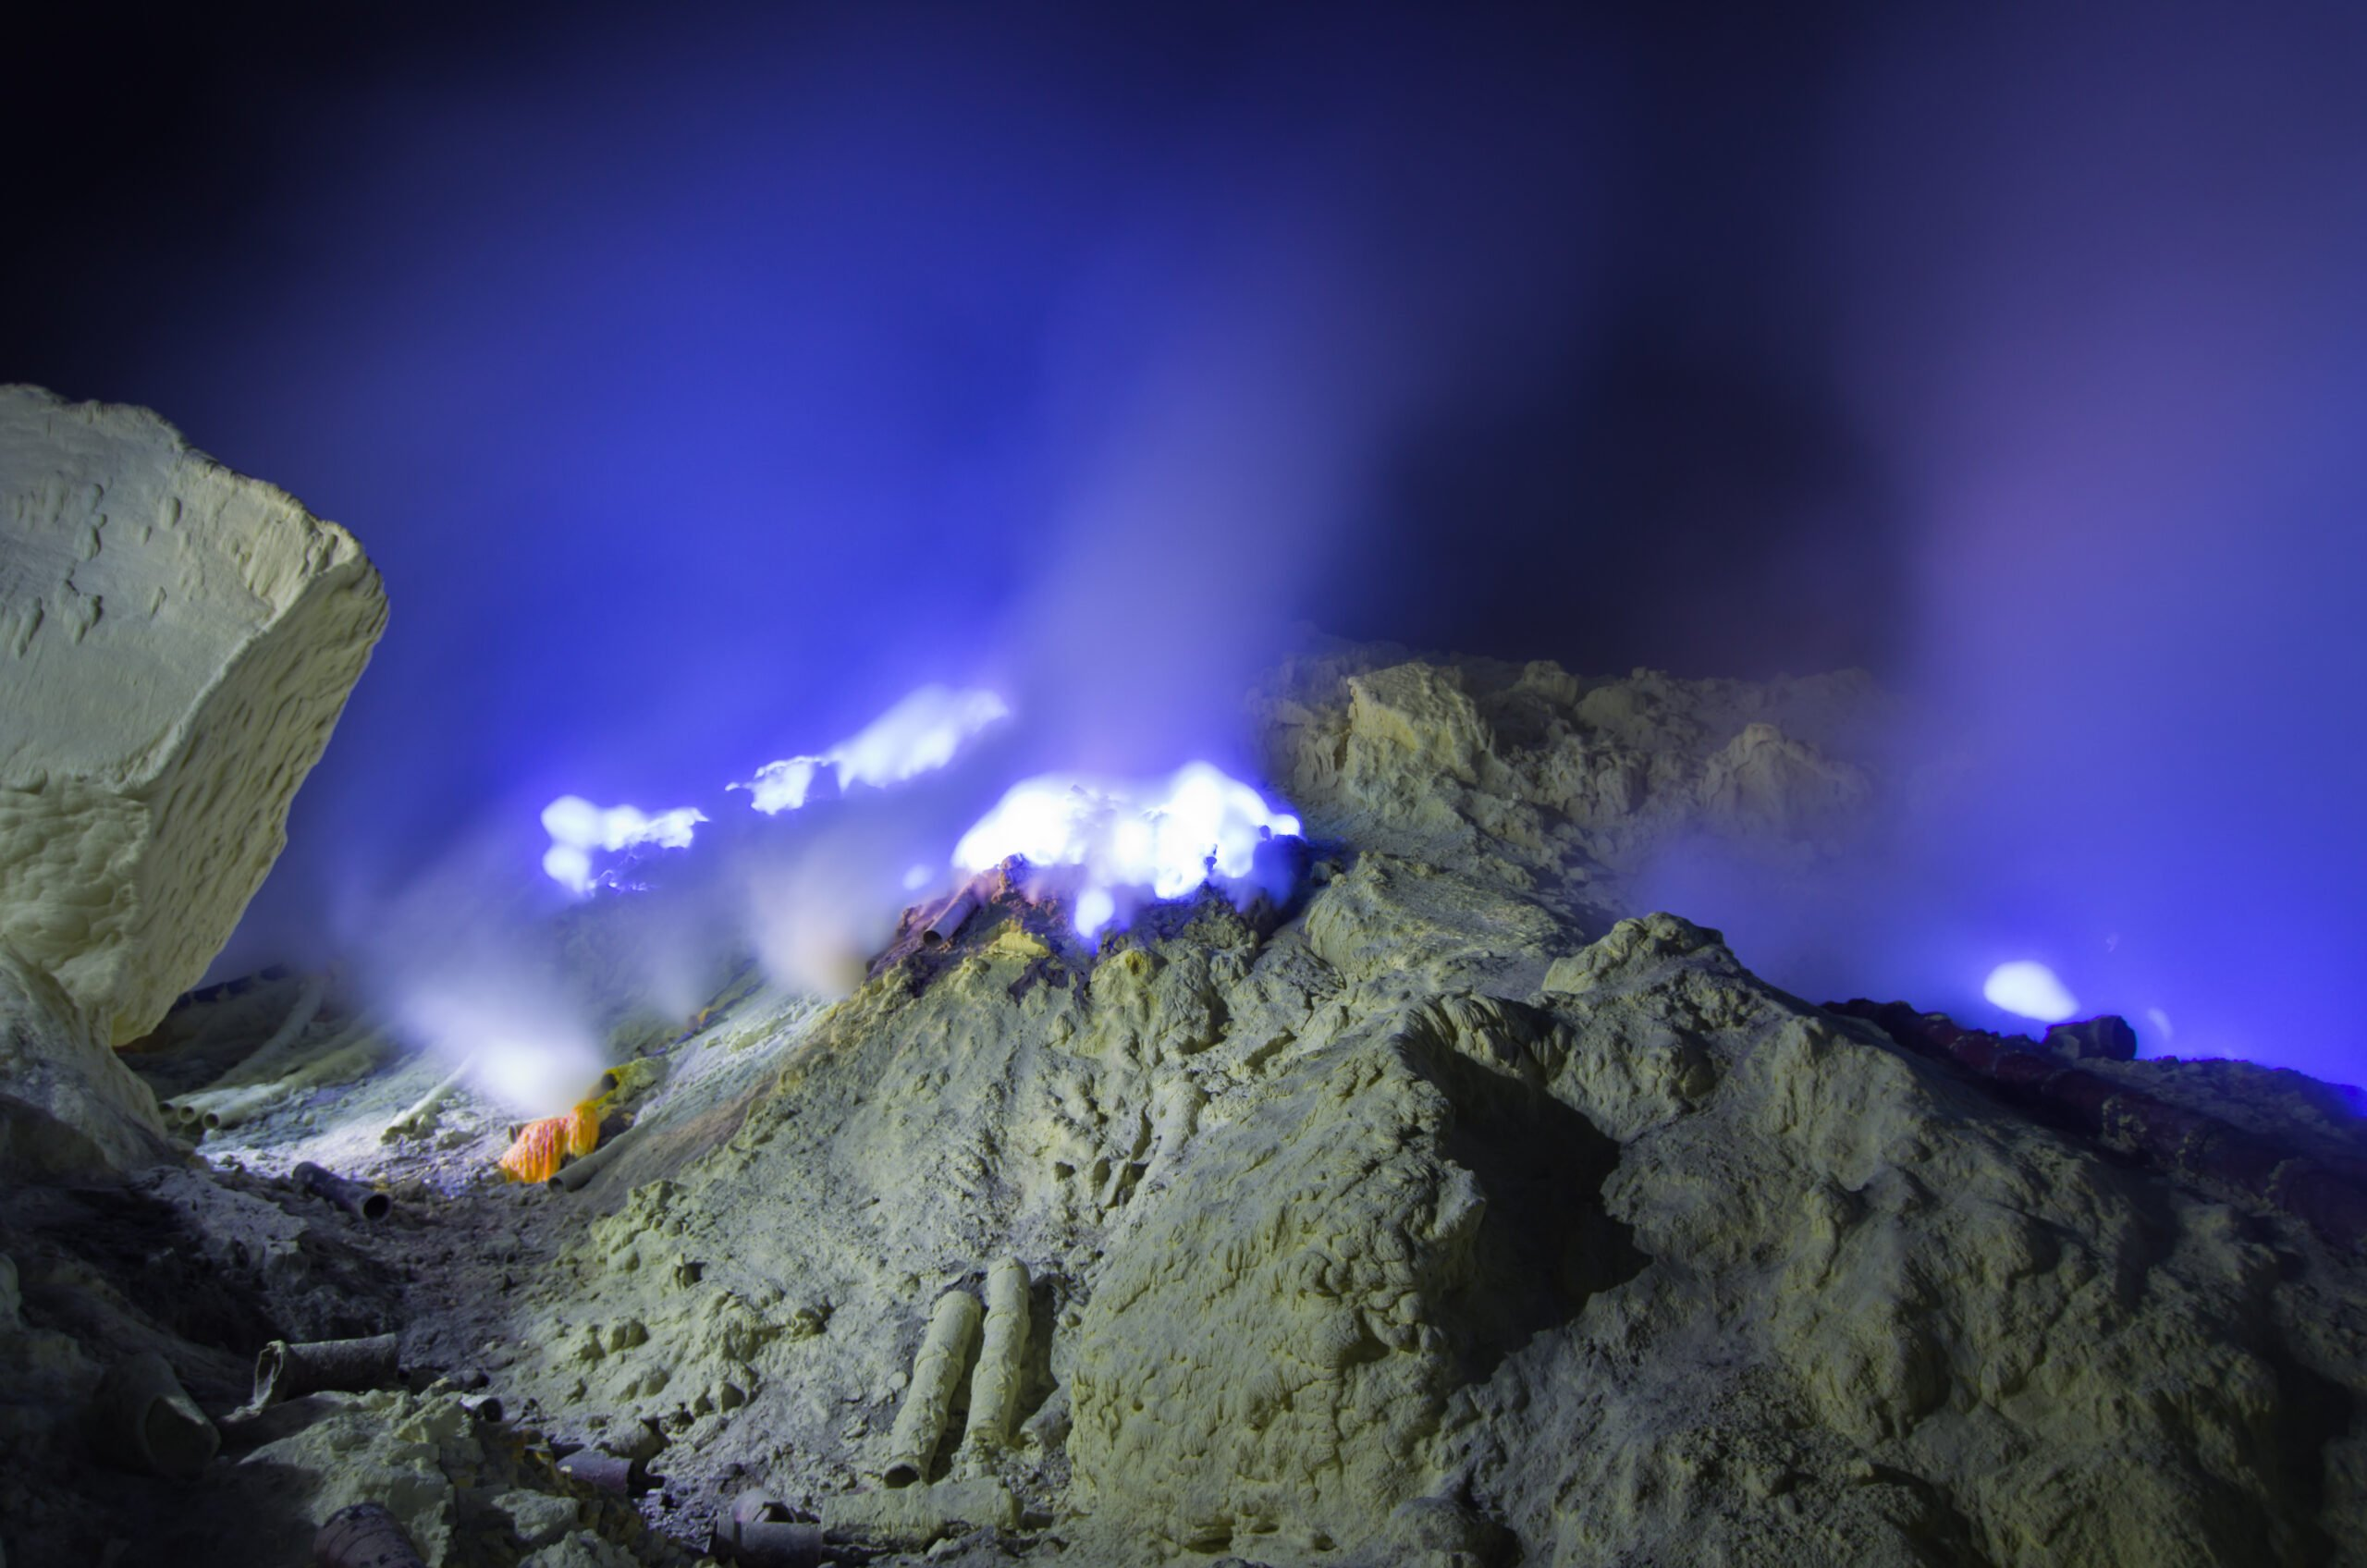 Witness The Dazzling Blue Lava-like Rivers Of Light Known As The Blue Fire Phenomenon In Our Mount Bromo Sunrise & Ijen Blue Fire 2 Day V.i.p Tour